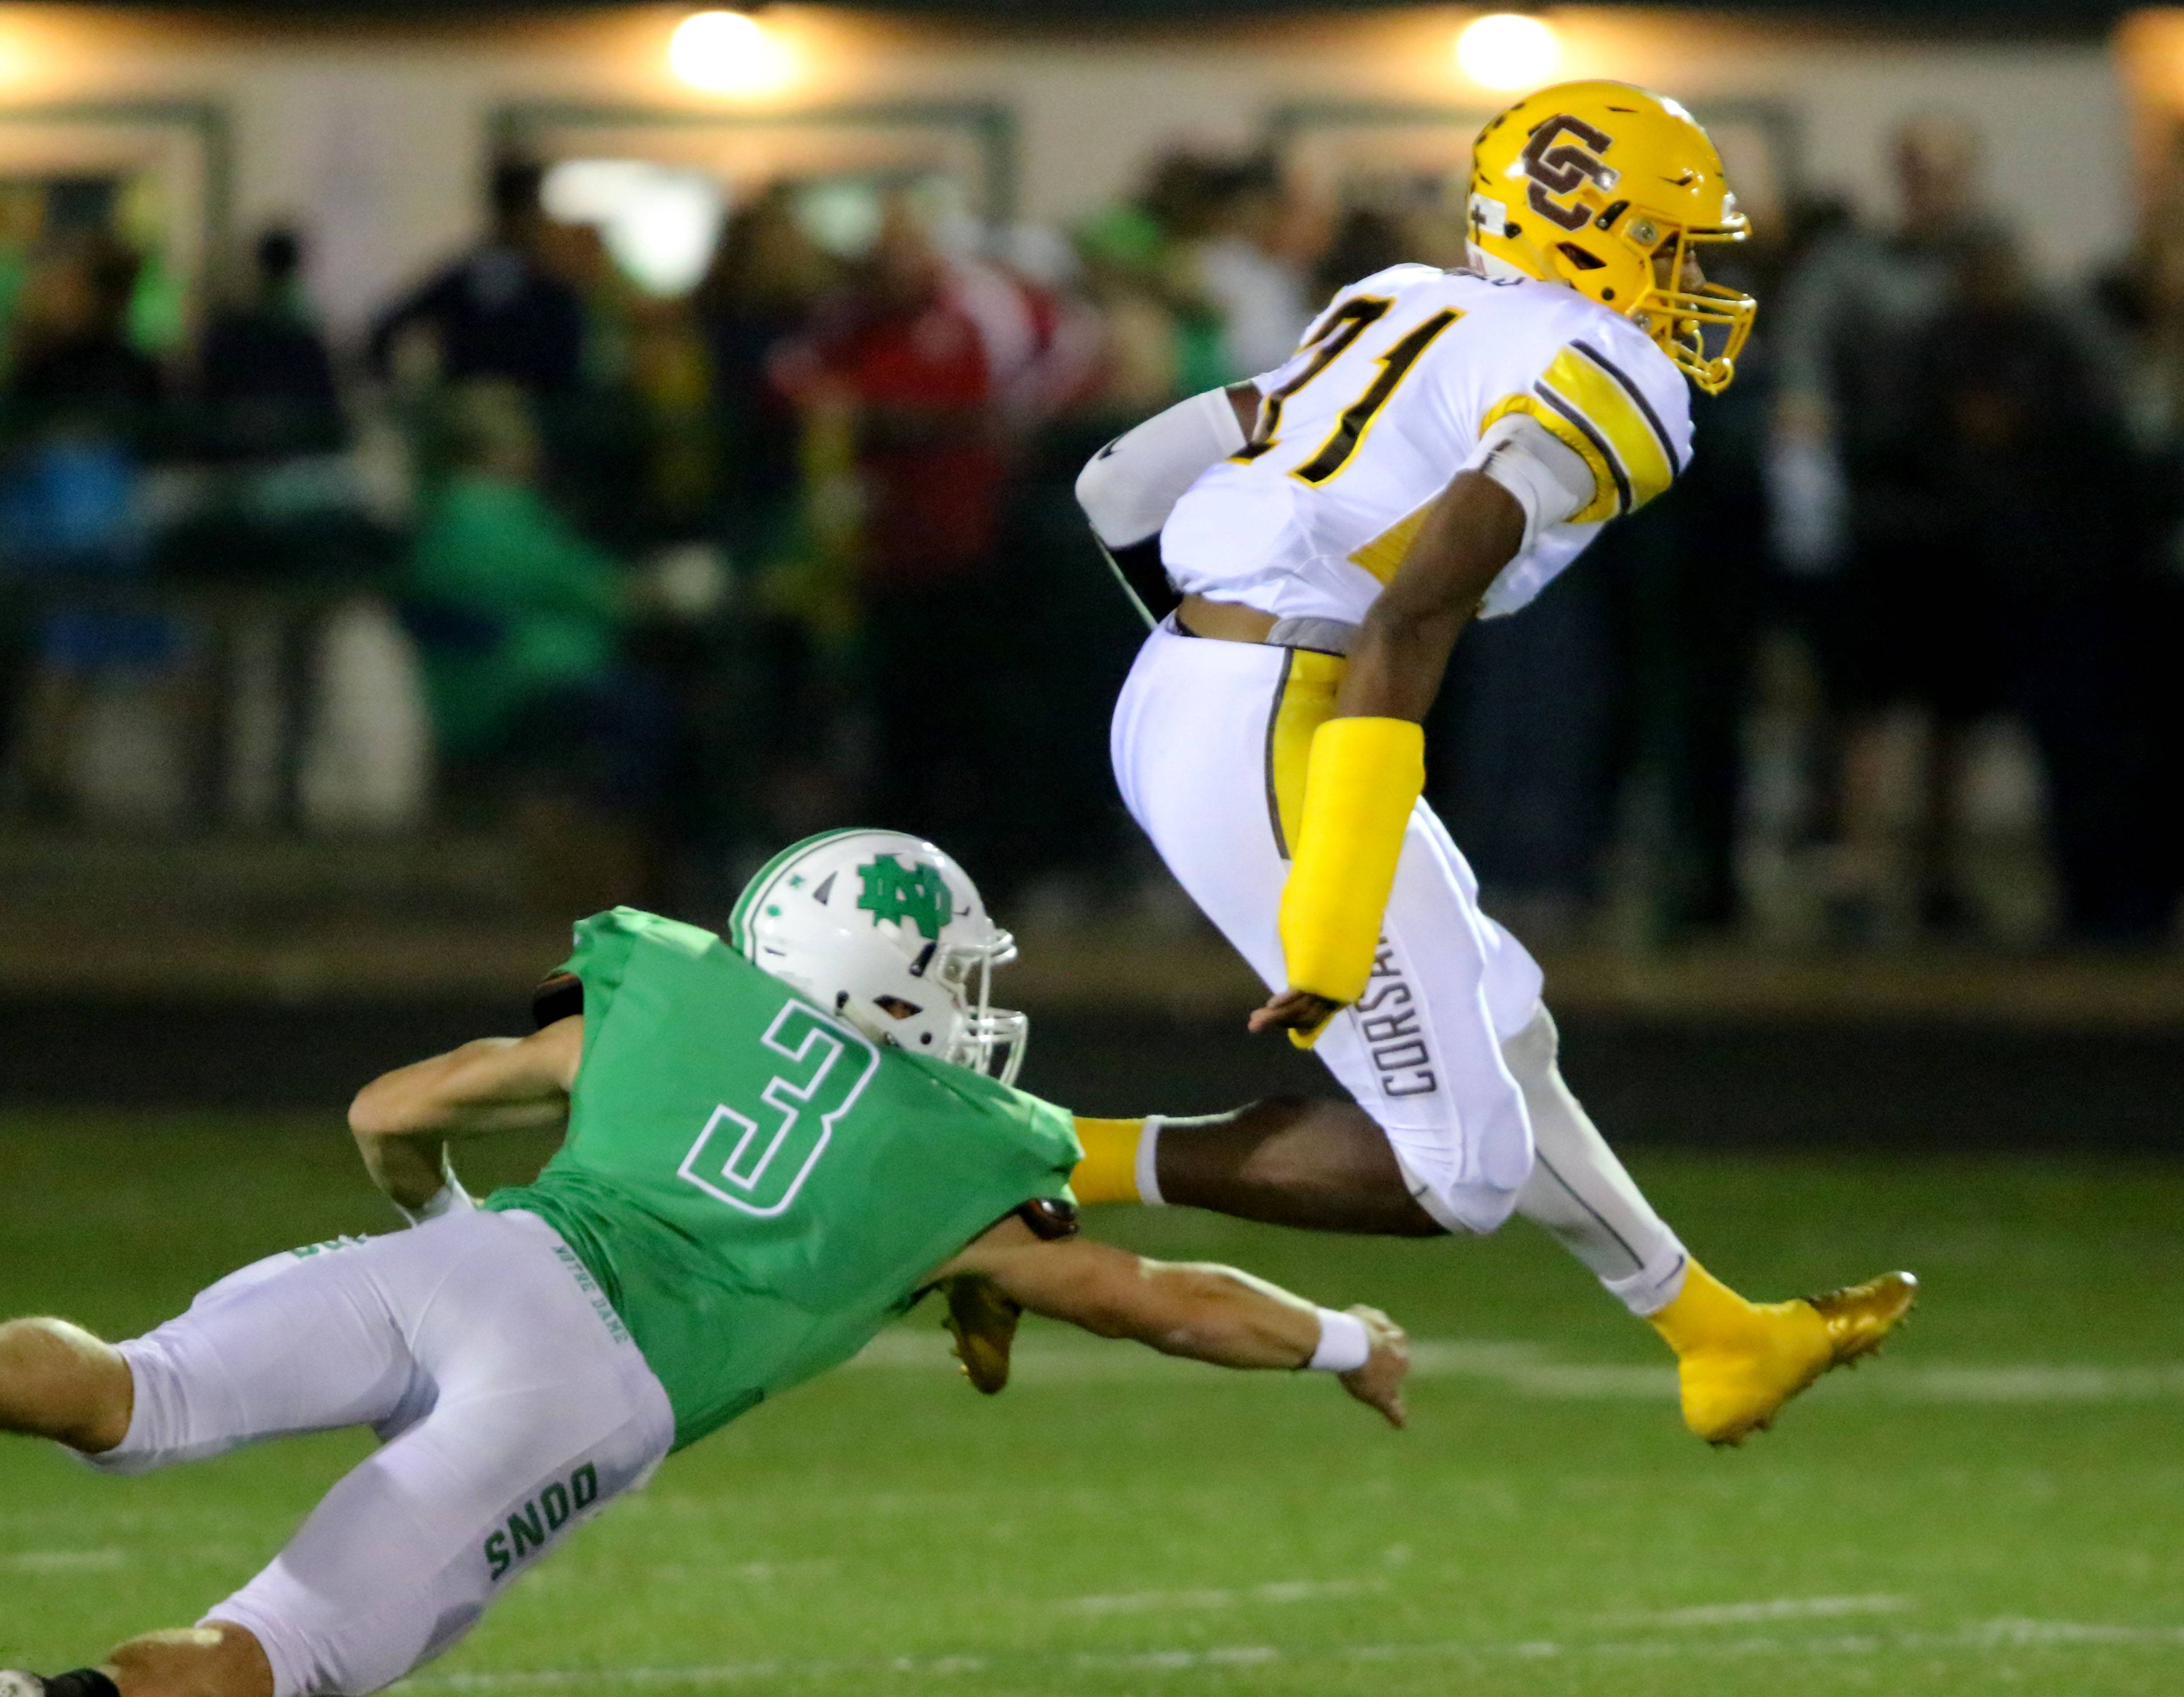 Carmel's Zaire Barnes, right, jumps over Notre Dame's Jake Martin on Friday night in Niles.